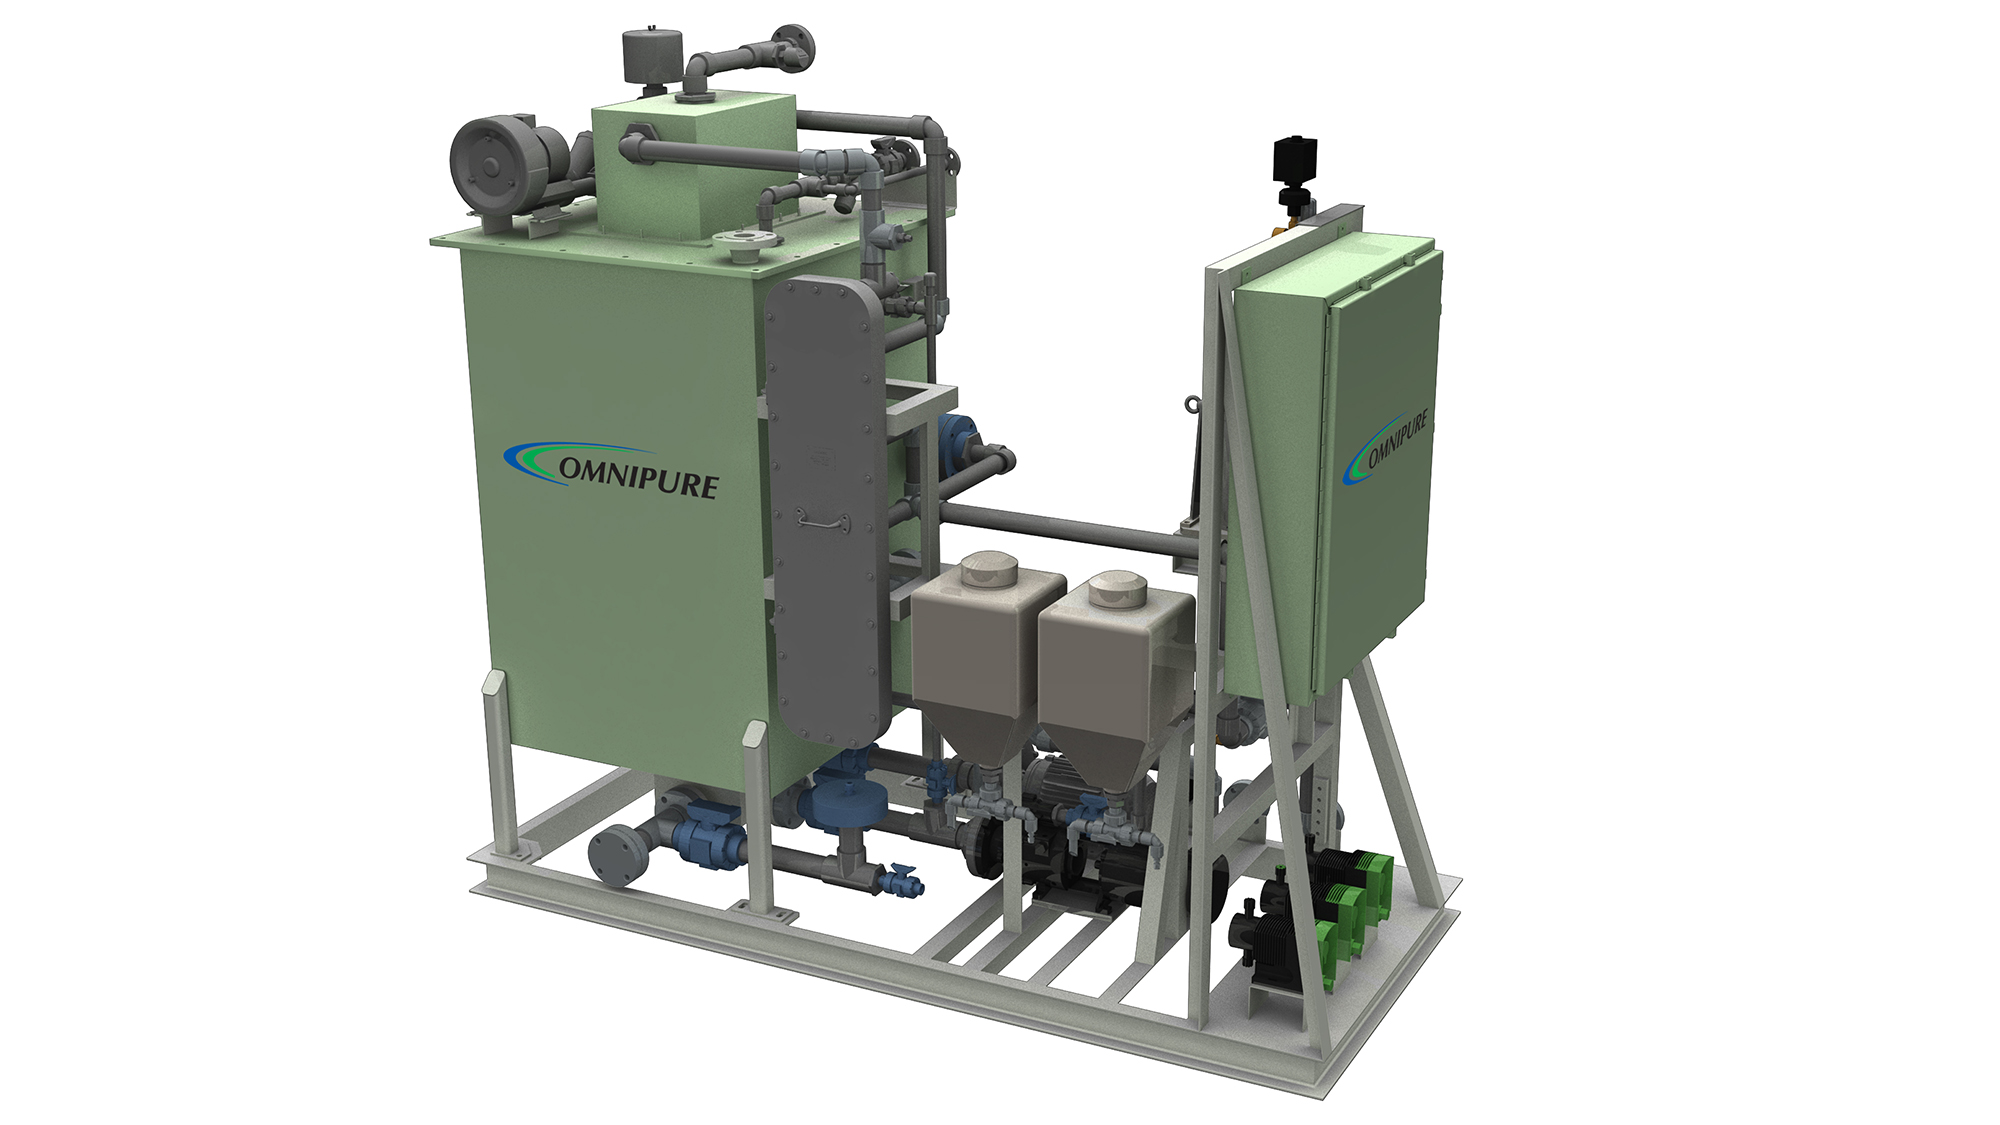 De Nora unveils all new OMNIPURE™ Series 64 marine sewage treatment system